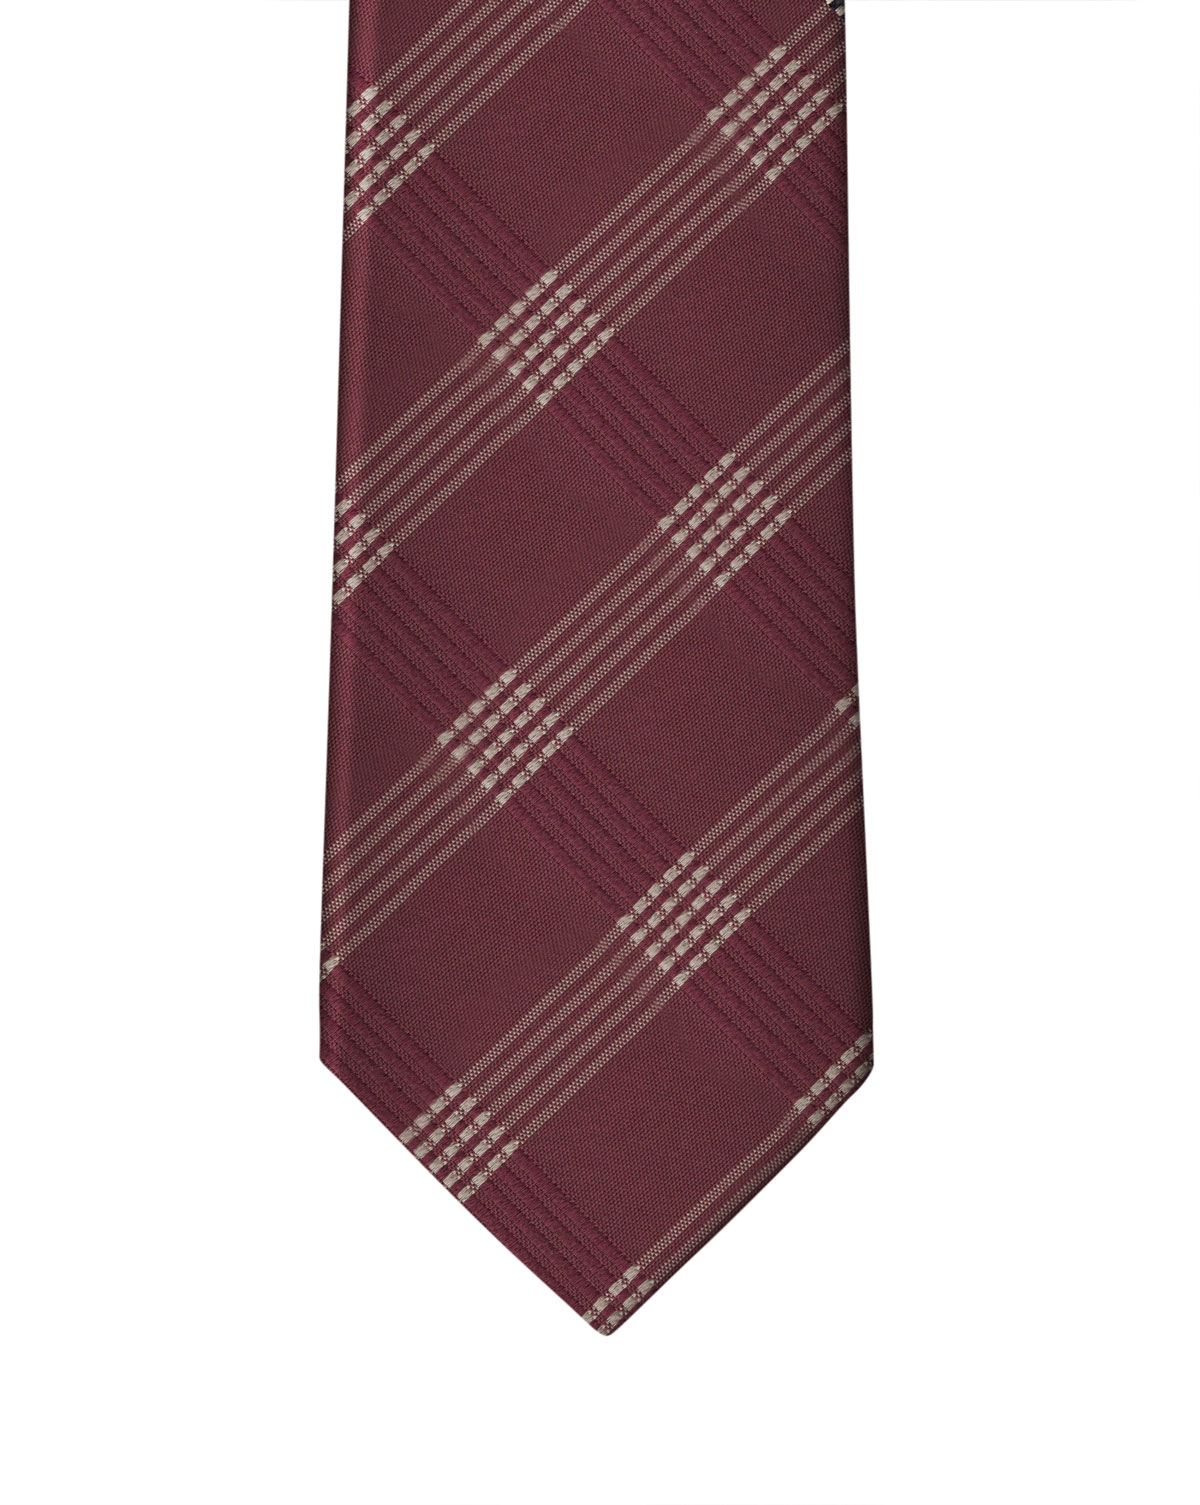 Burgundy Graphic Check Necktie